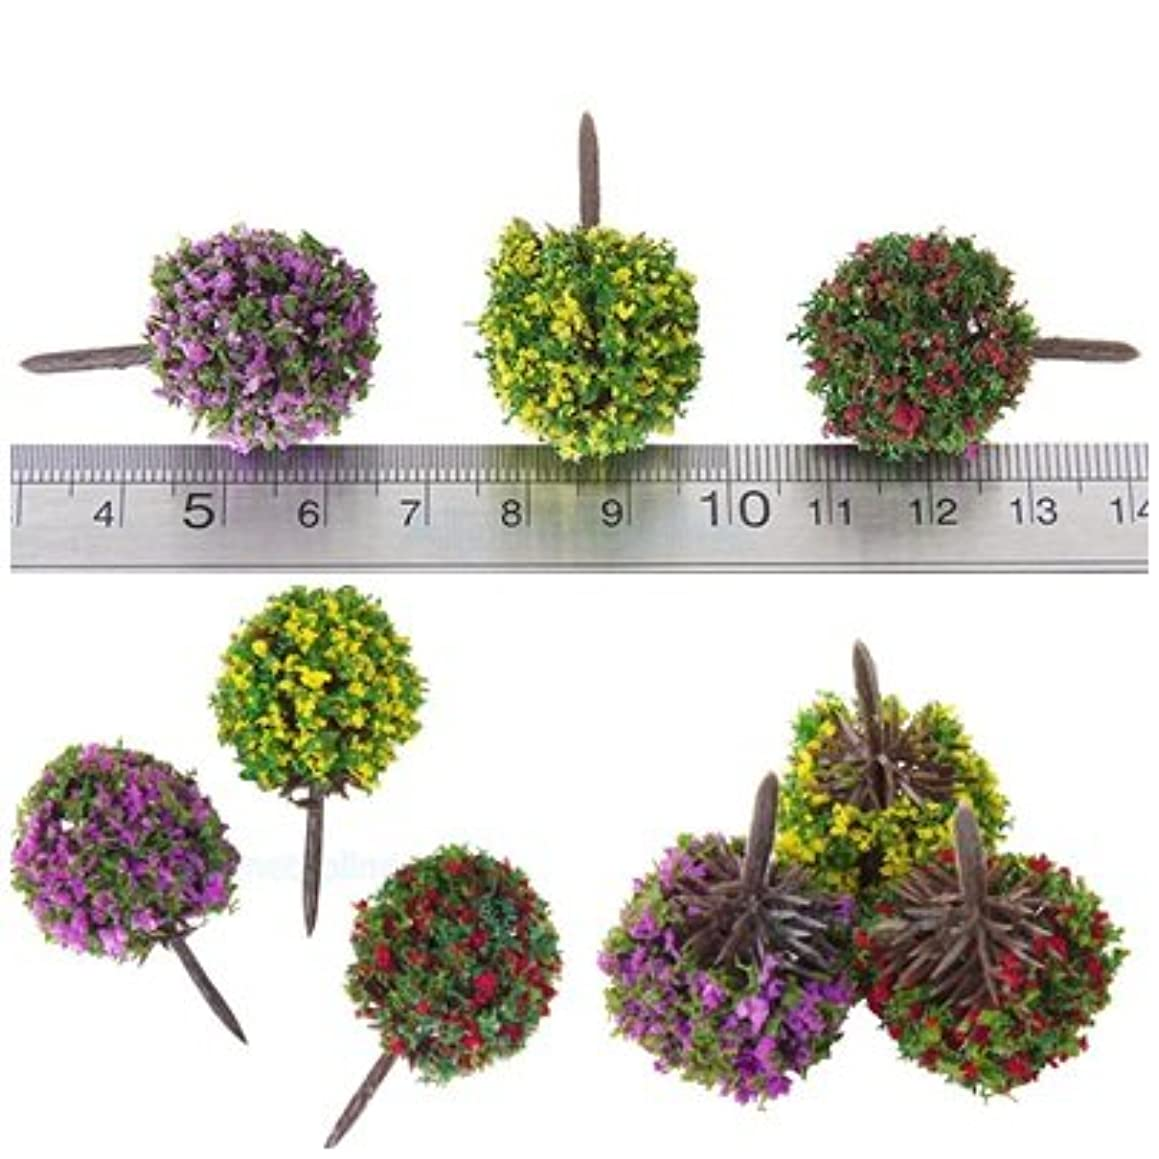 NKS 30pcs Mixed Flower Trees Model Train Garden Scenery HO Scale 1:100